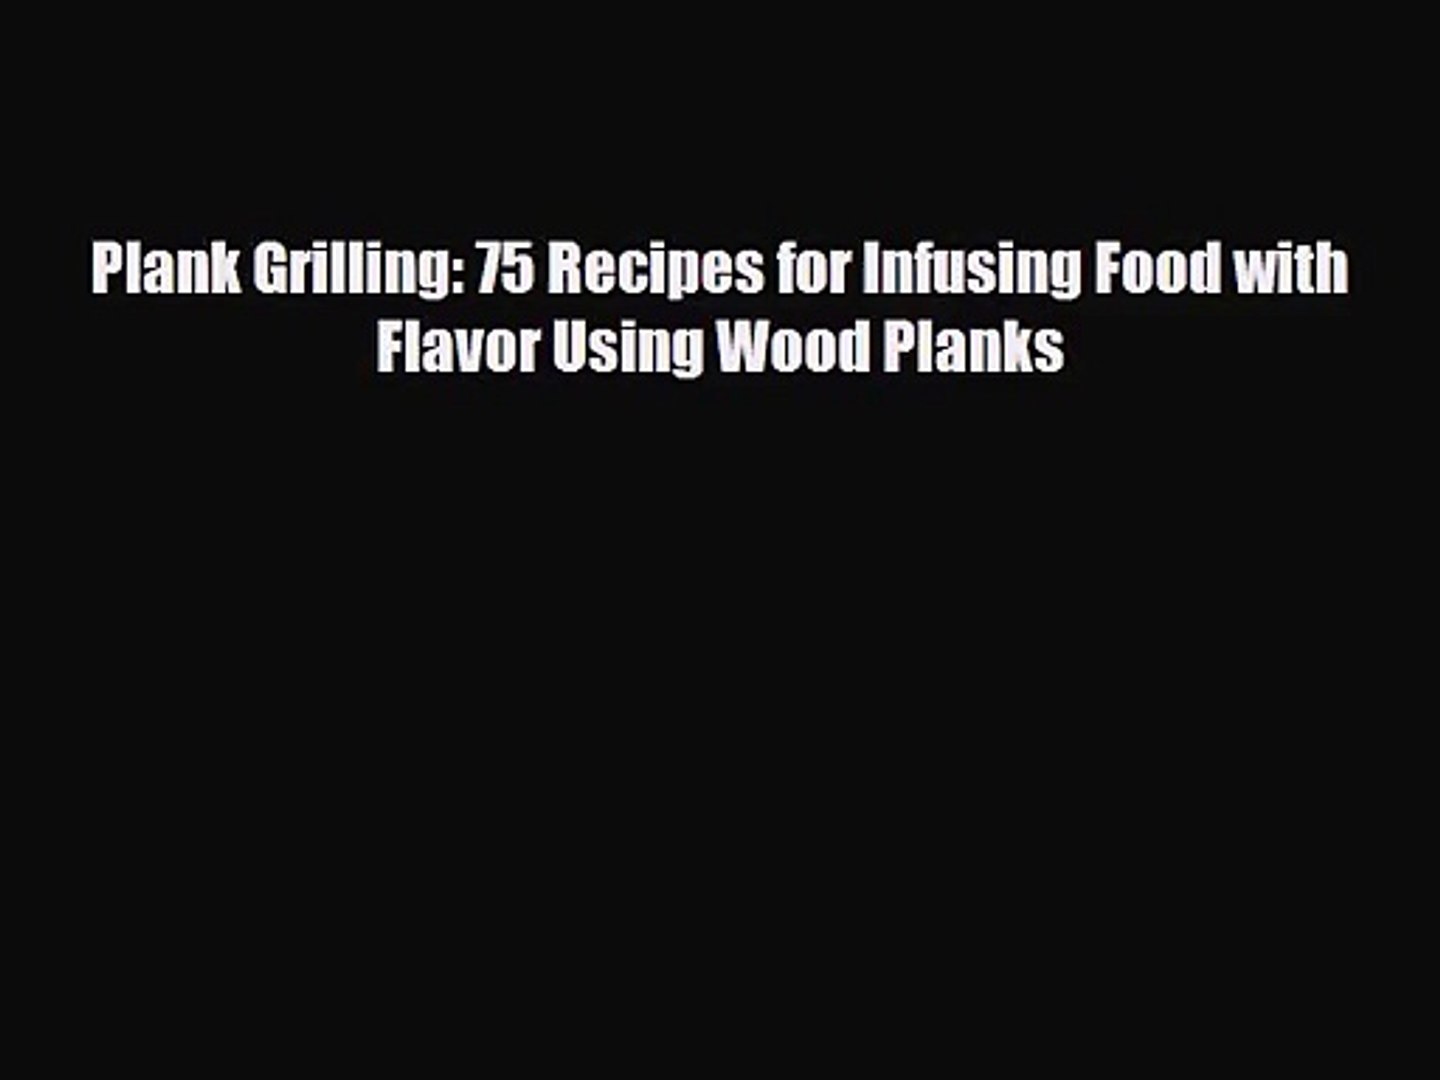 [PDF Download] Plank Grilling: 75 Recipes for Infusing Food with Flavor Using Wood Planks [Download]